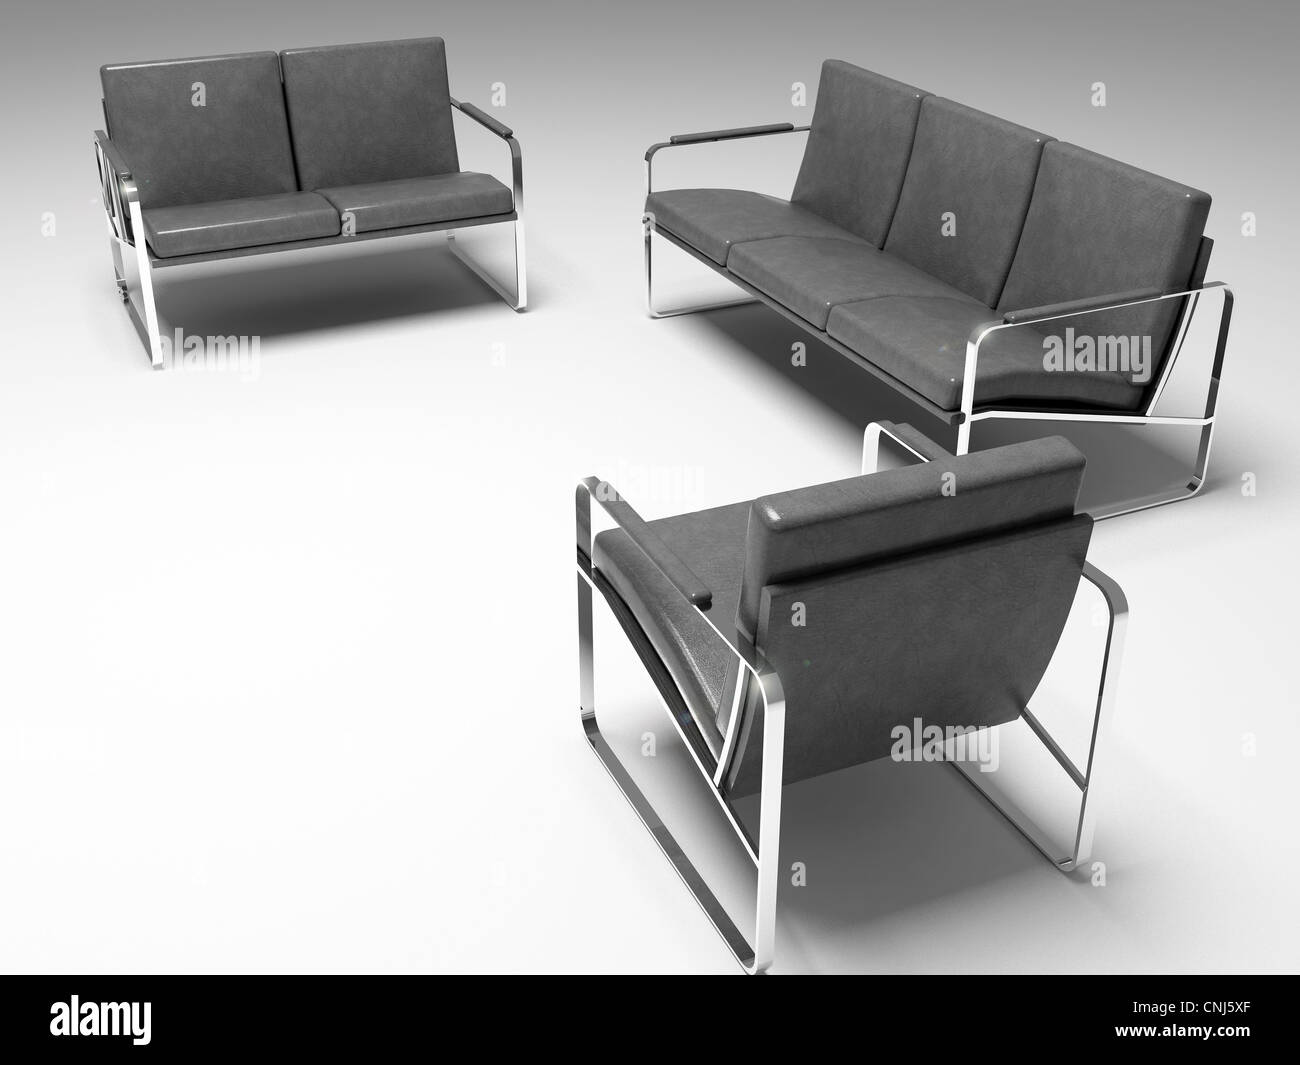 3D render. Three couches isolated on white background. - Stock Image